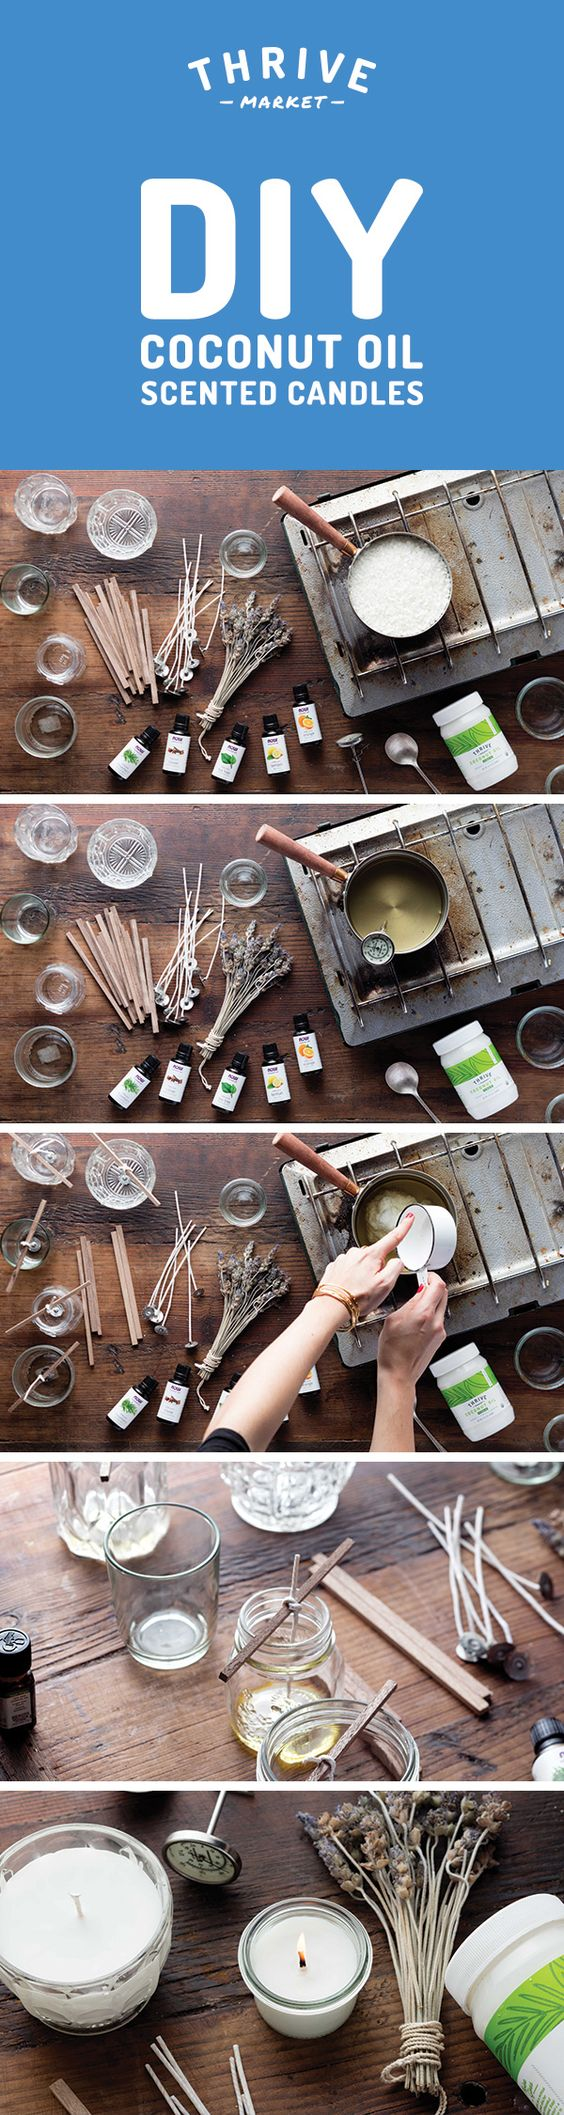 scented-candles-diy-2